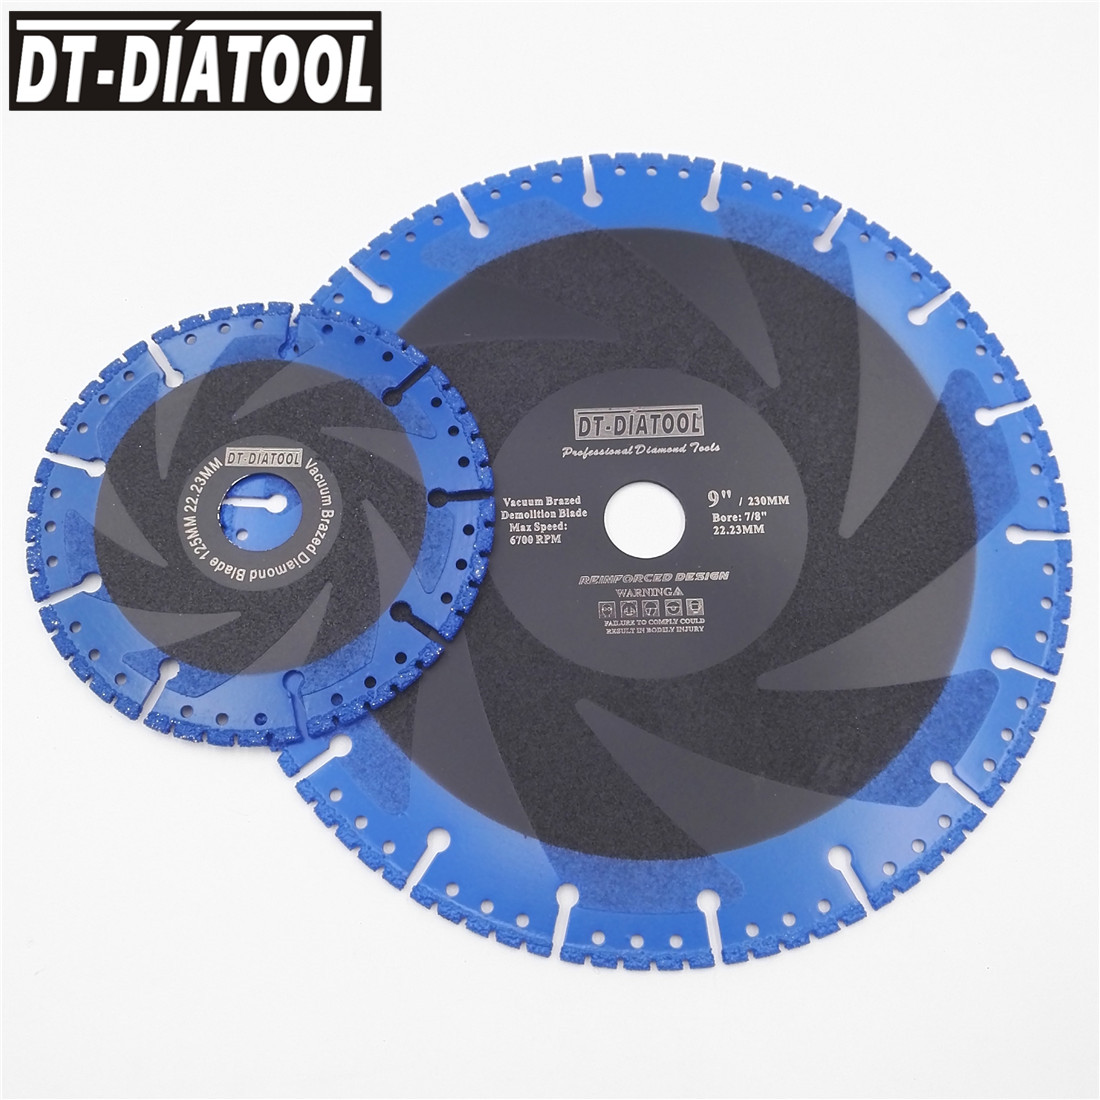 DT-DIATOOL 2pcs Vacuum Brazed Demolition Saw Blade Diamond Blade Cutting Disc For Multi Purpose Cast Iron Rebar Hard Stone